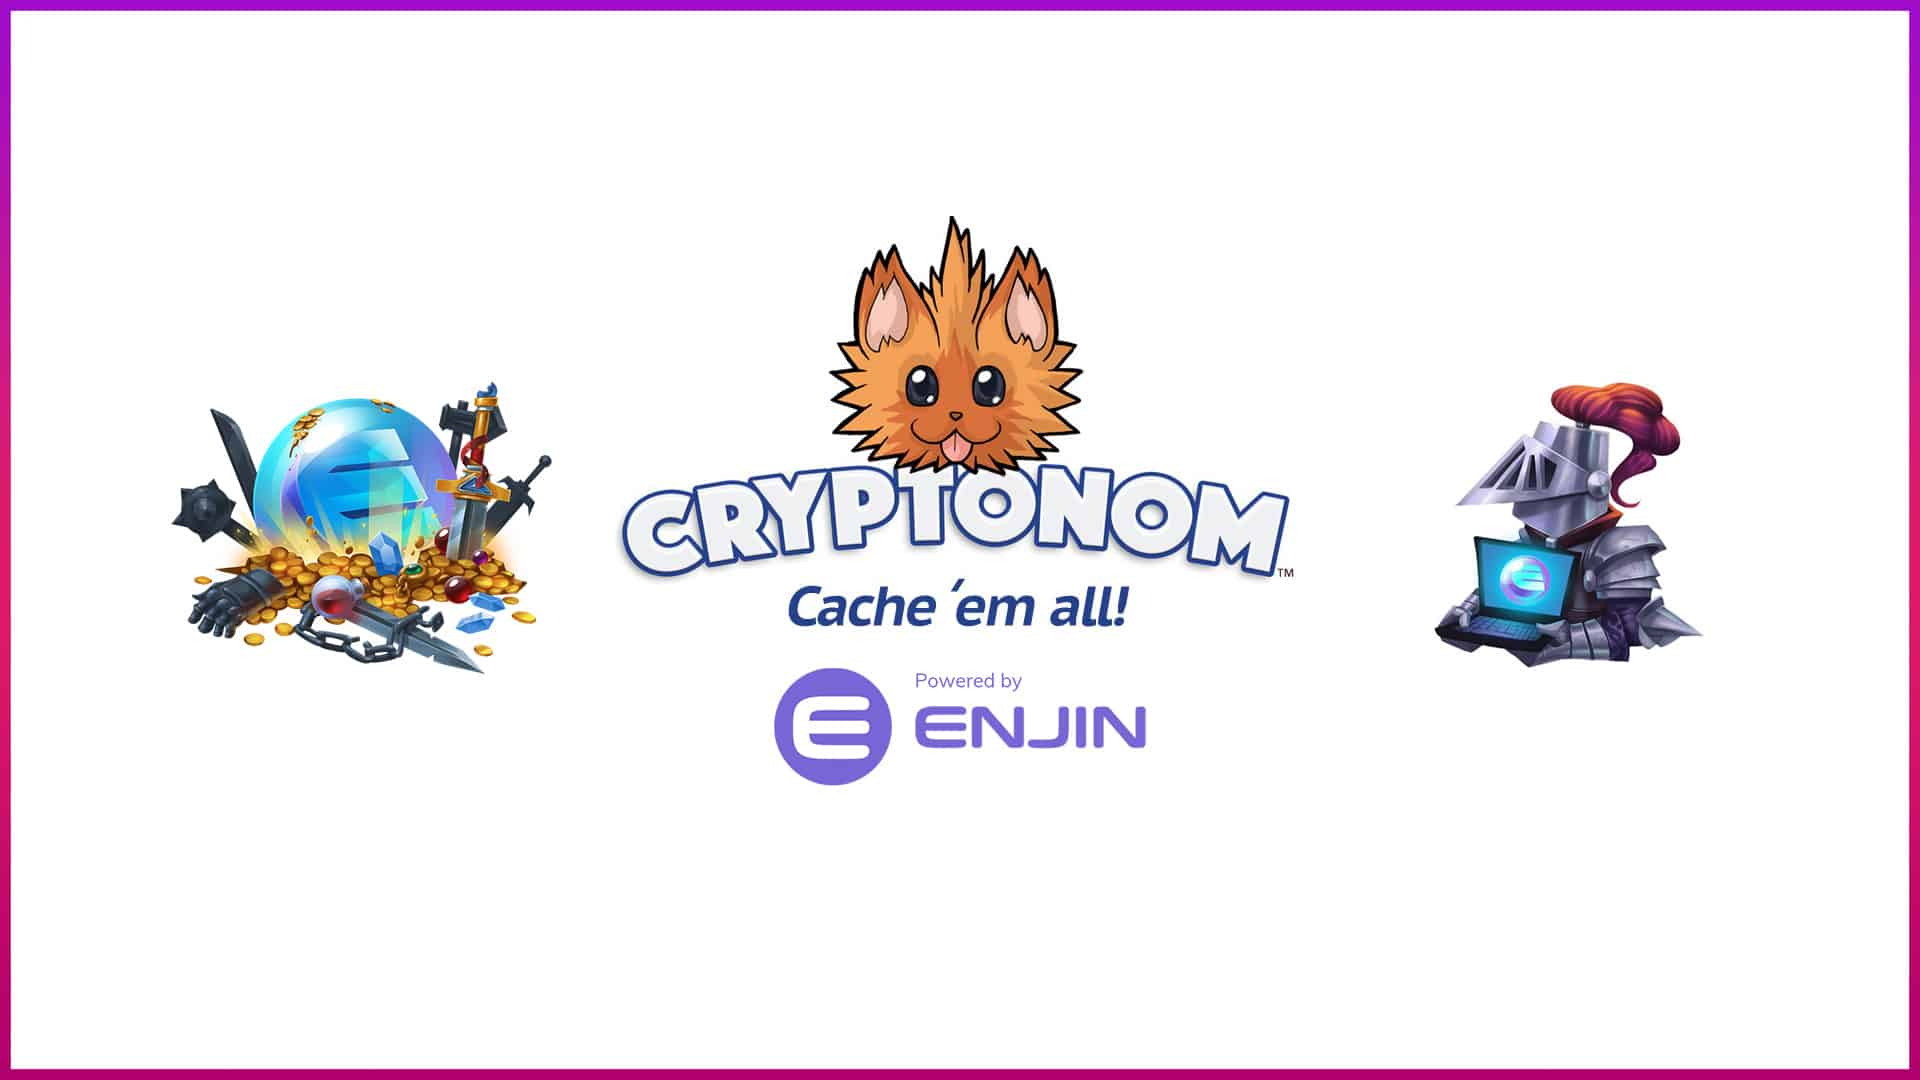 Cryptonom Game powered by Enjin